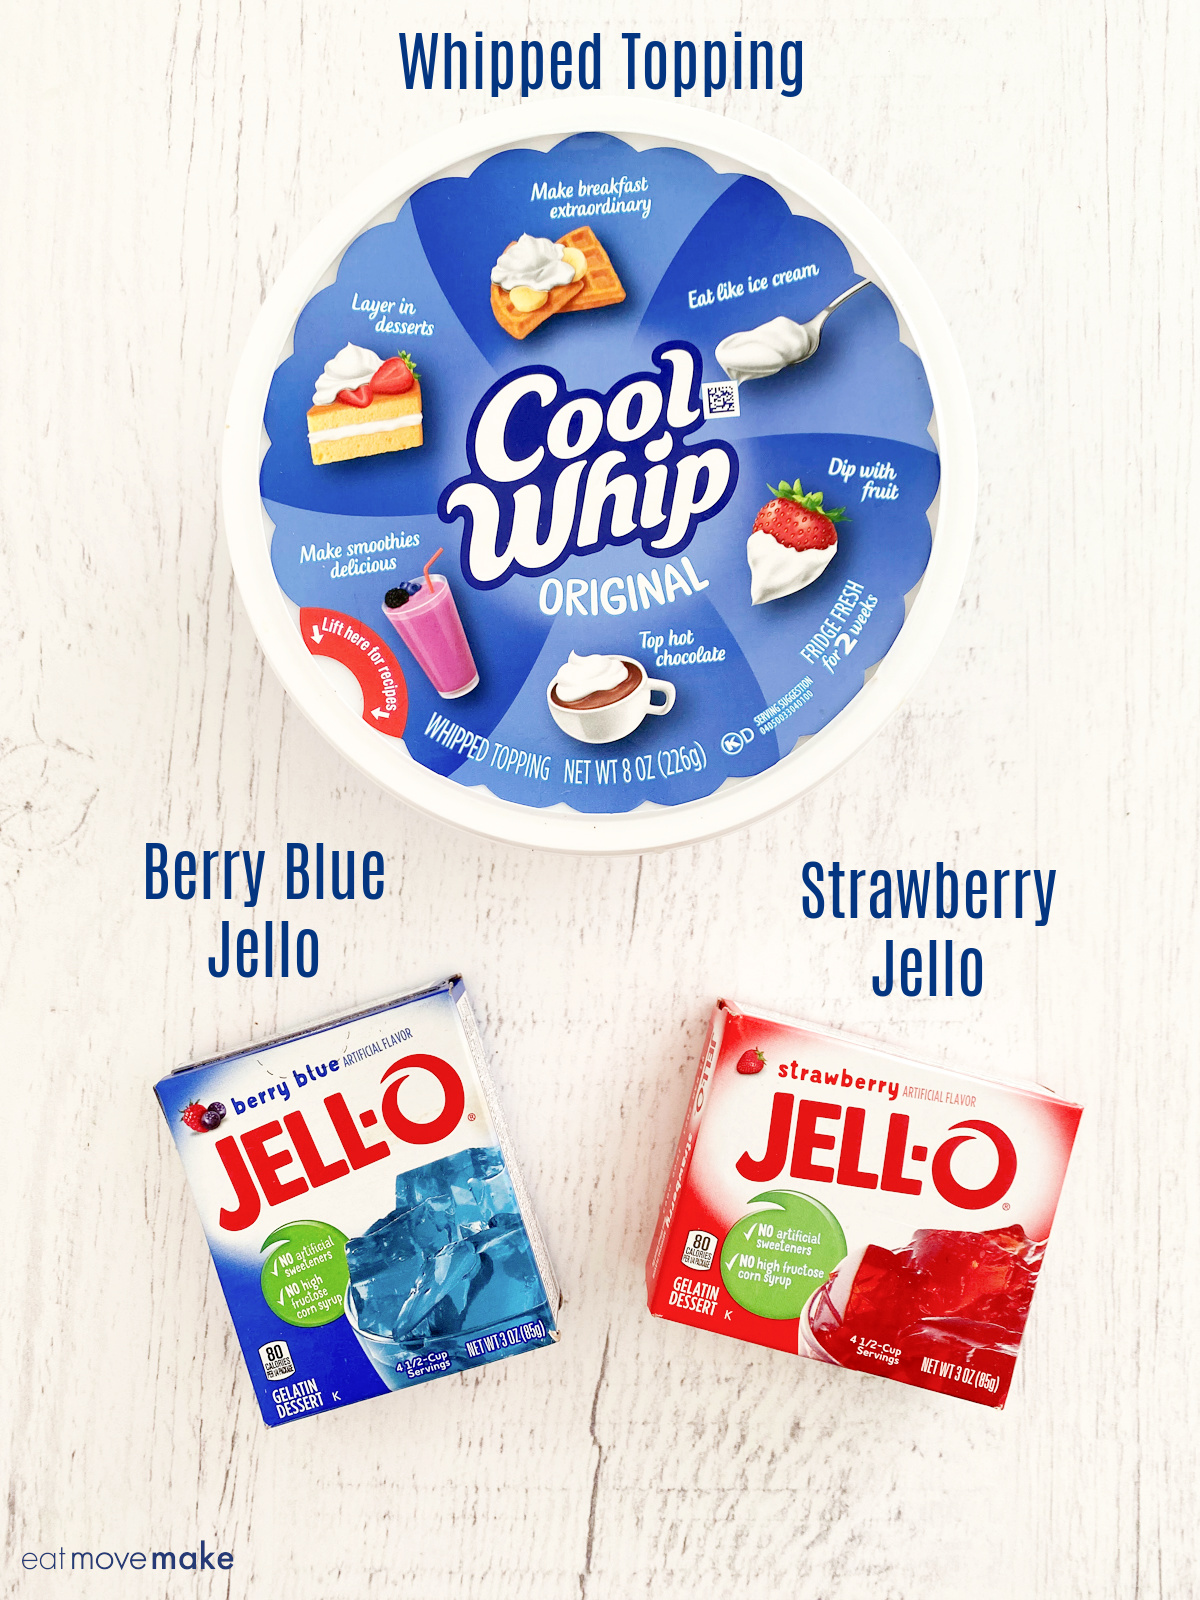 blue jello box, red jello box and cool whip tub on white table with labels